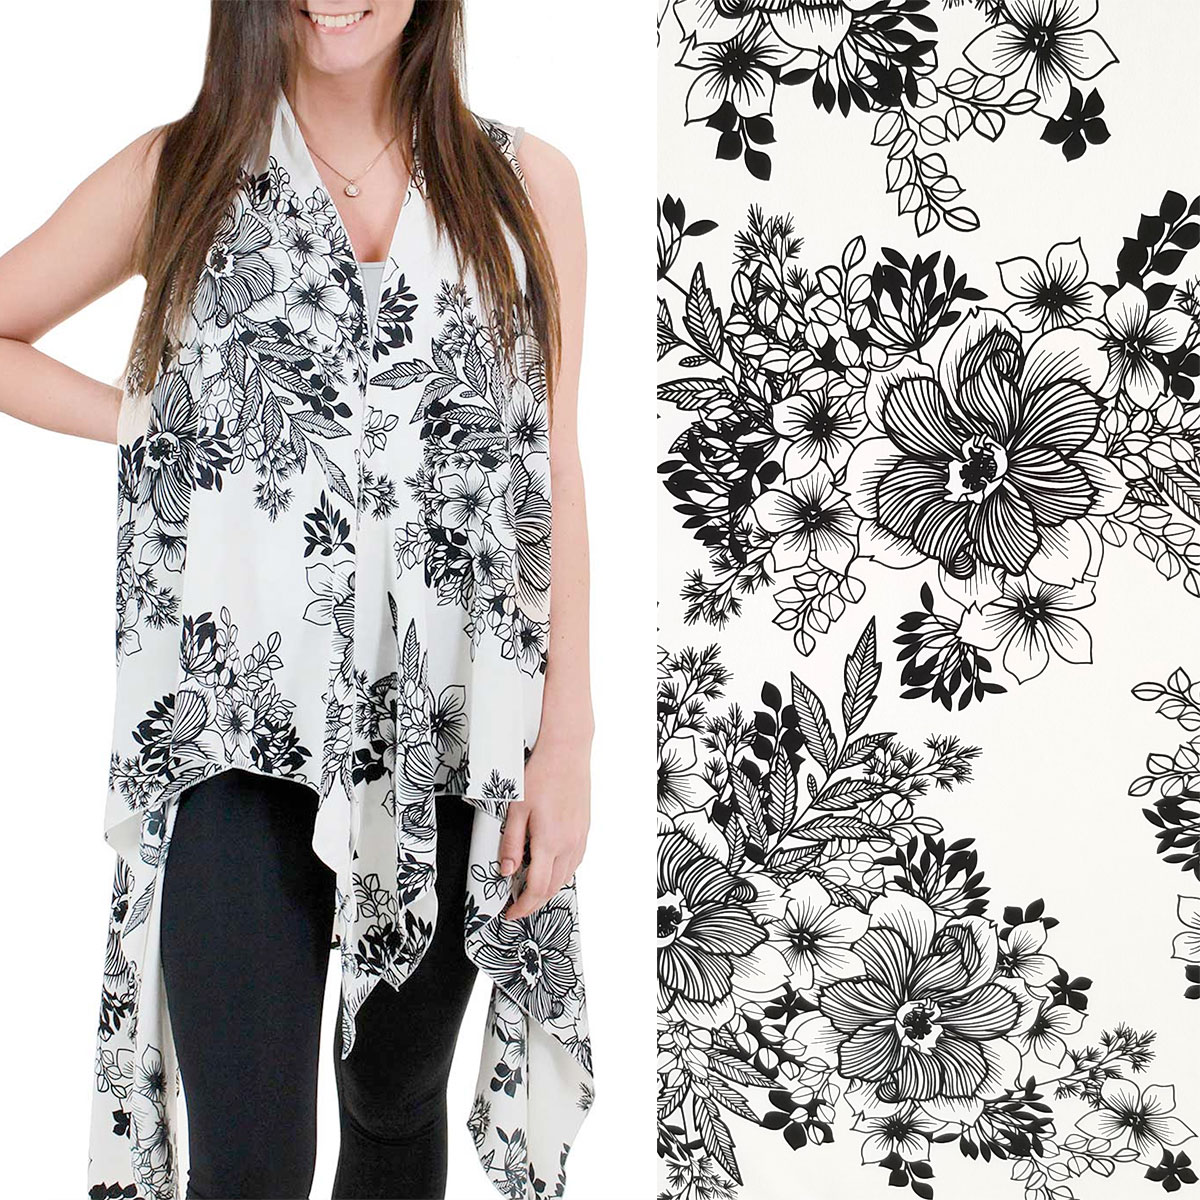 Brushed Matte Satin Scarf Vests (Style 2) - #9321 White MB